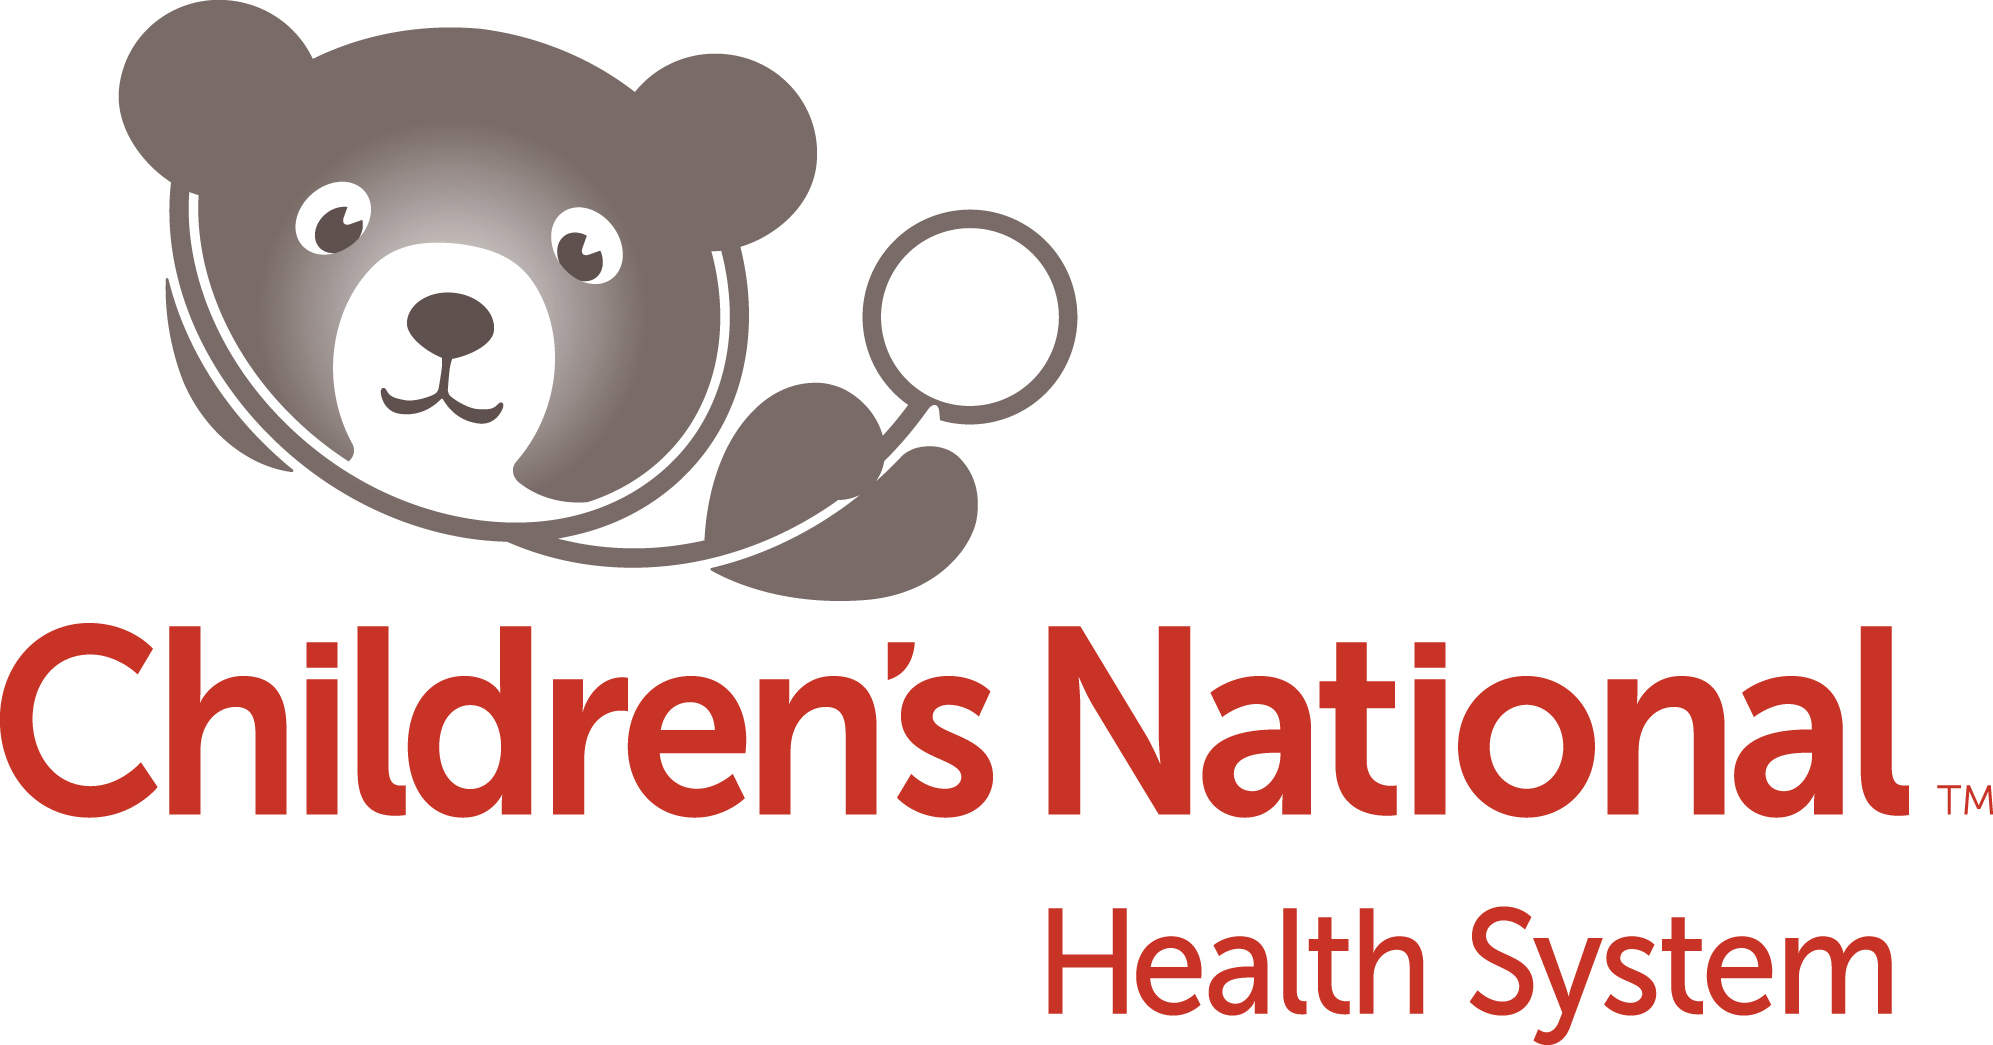 Childrens National Health System logo